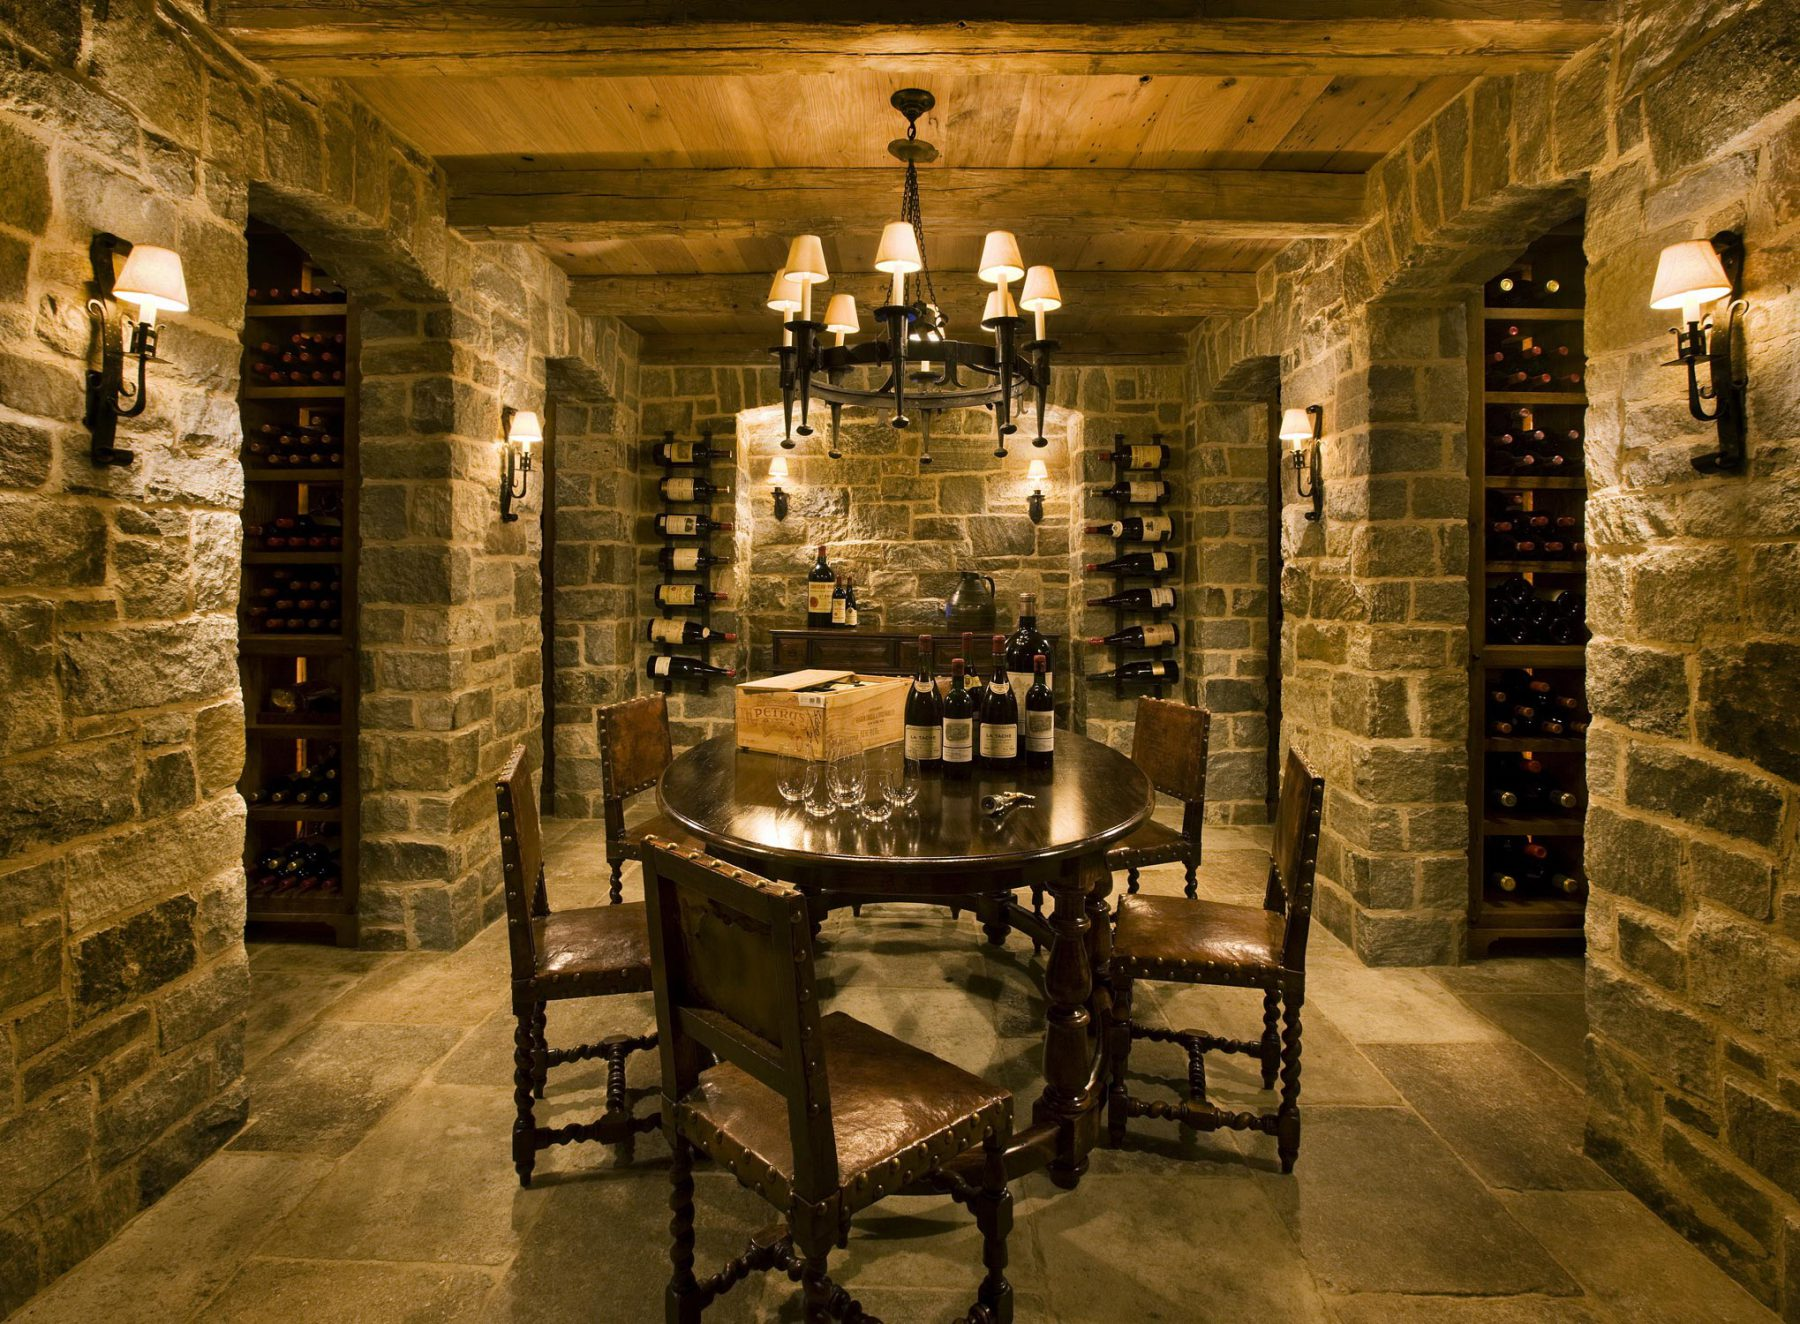 Peachy A New Wine Cellar G P Schafer Architects Interior Design Ideas Tzicisoteloinfo